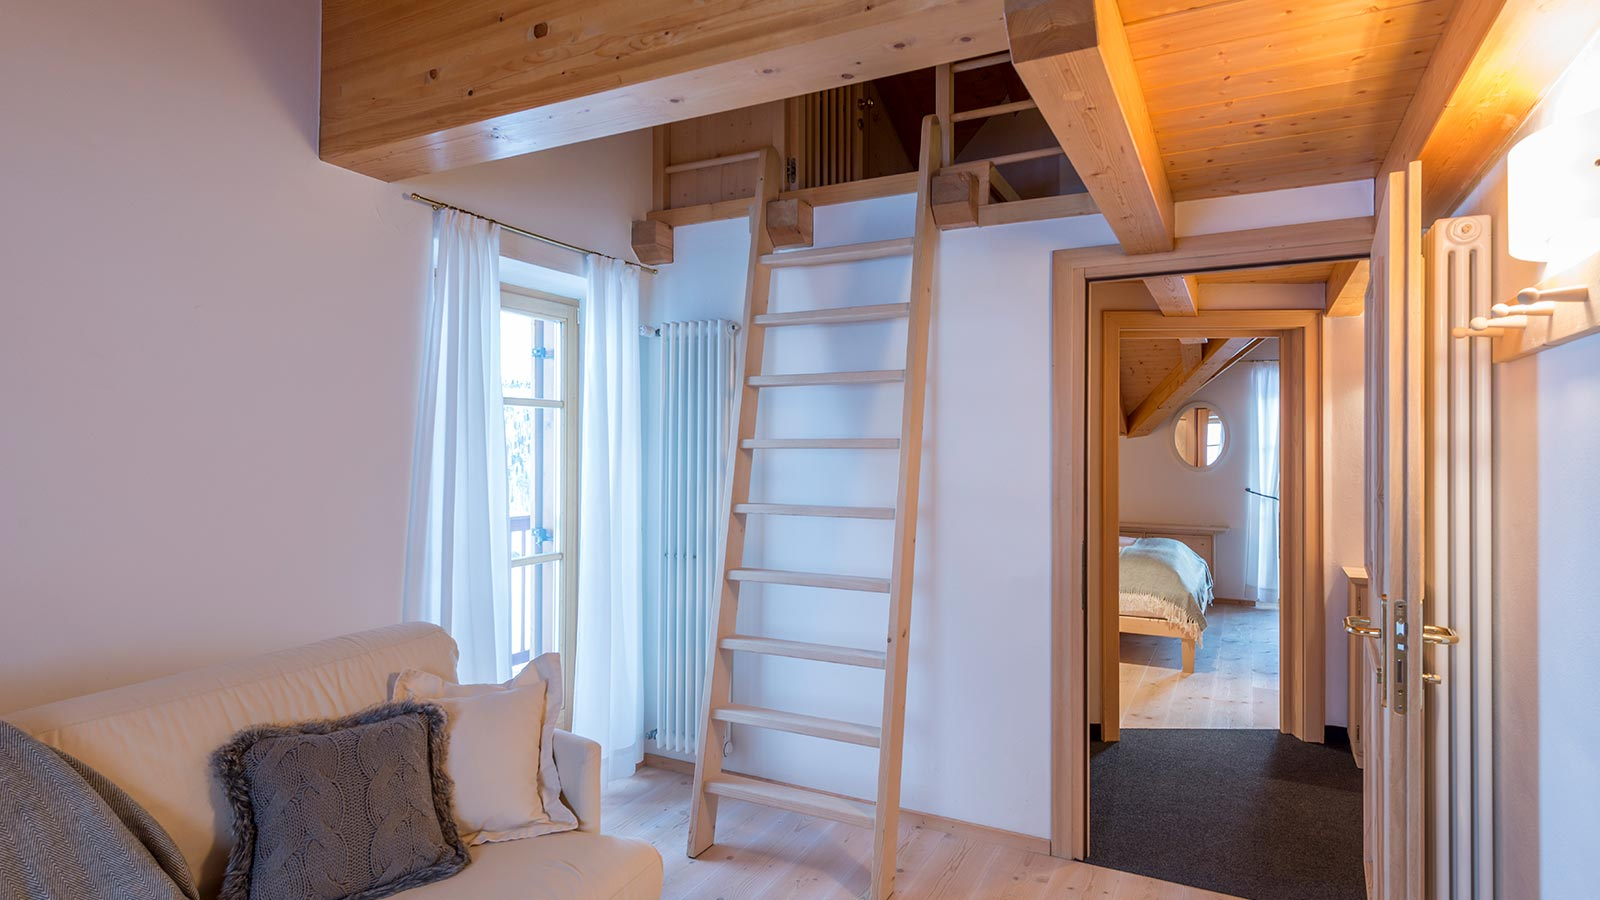 Detail of a staircase in the Chalet room